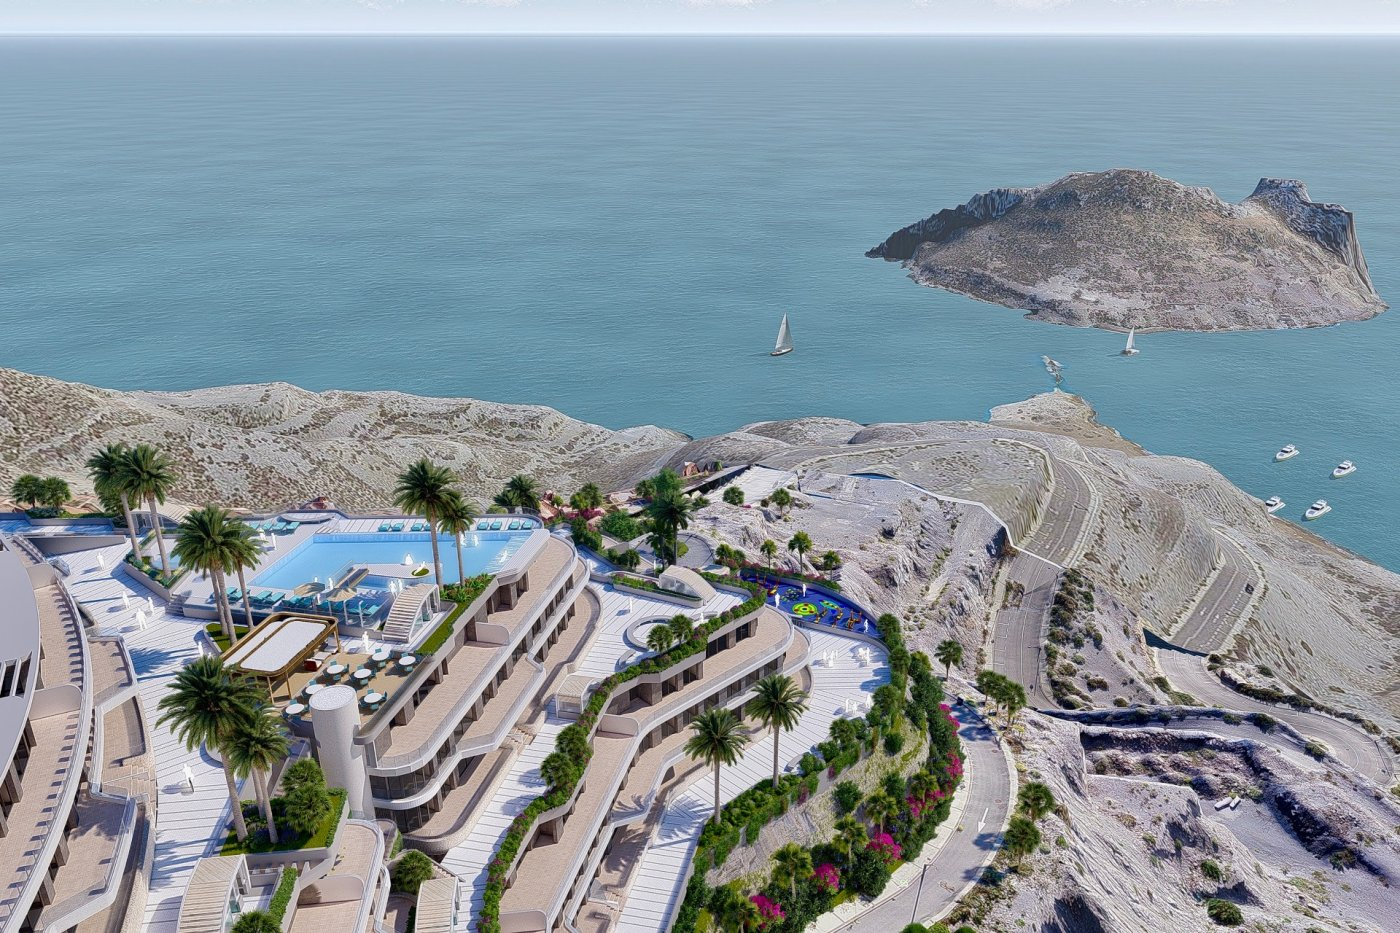 Image 2 Apartment ref 3265-03120 for sale in Isea Calma Spain - Quality Homes Costa Cálida